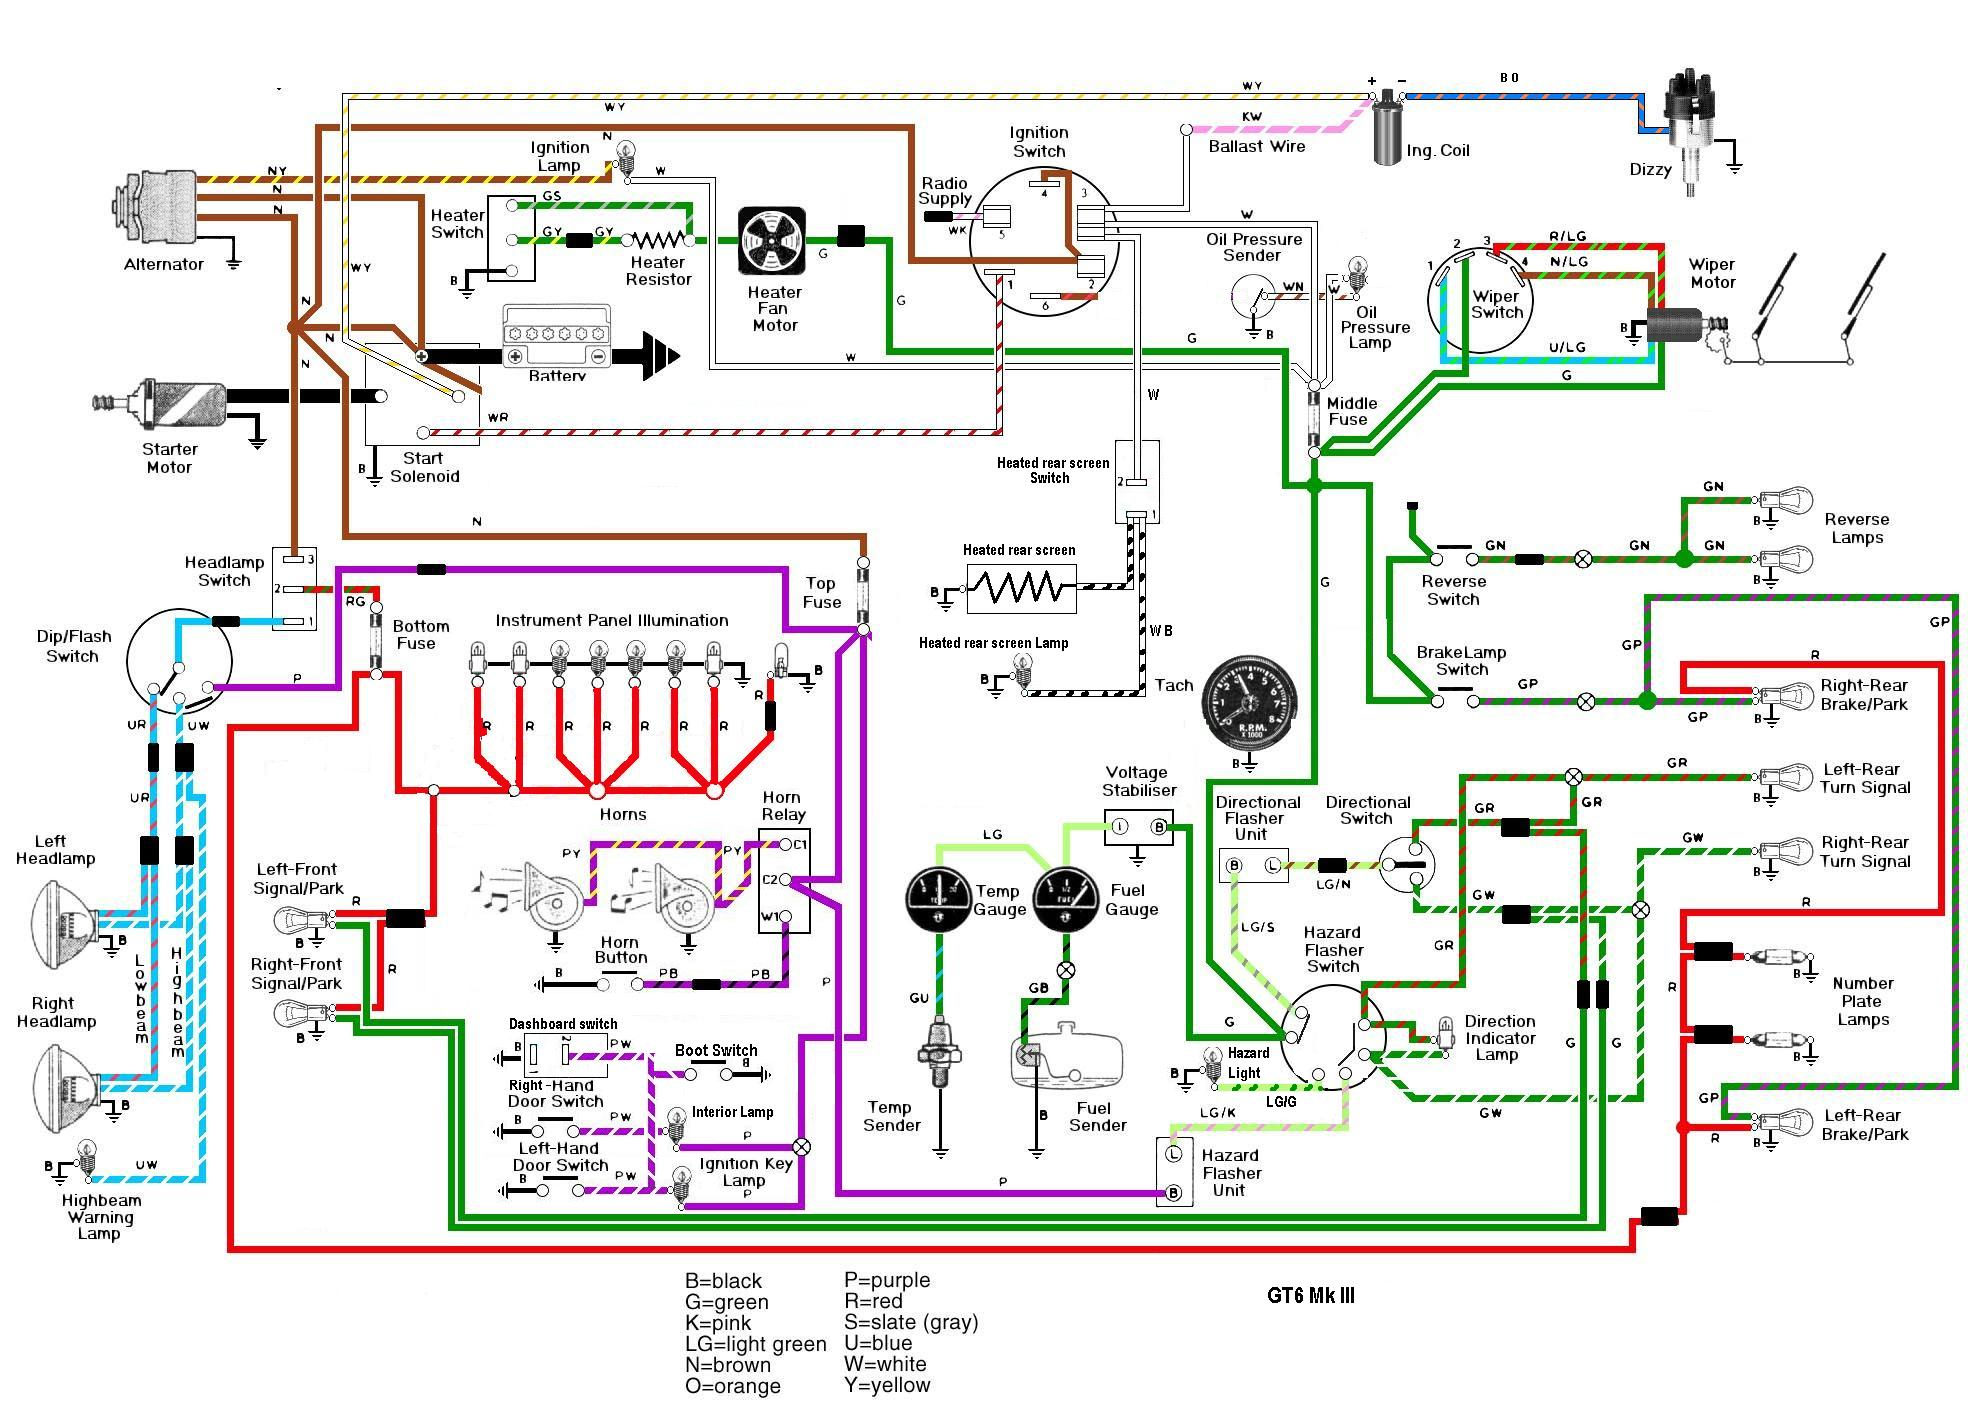 Swell 1980 Mgb Wiring Schematic Basic Electronics Wiring Diagram Wiring Cloud Timewinrebemohammedshrineorg